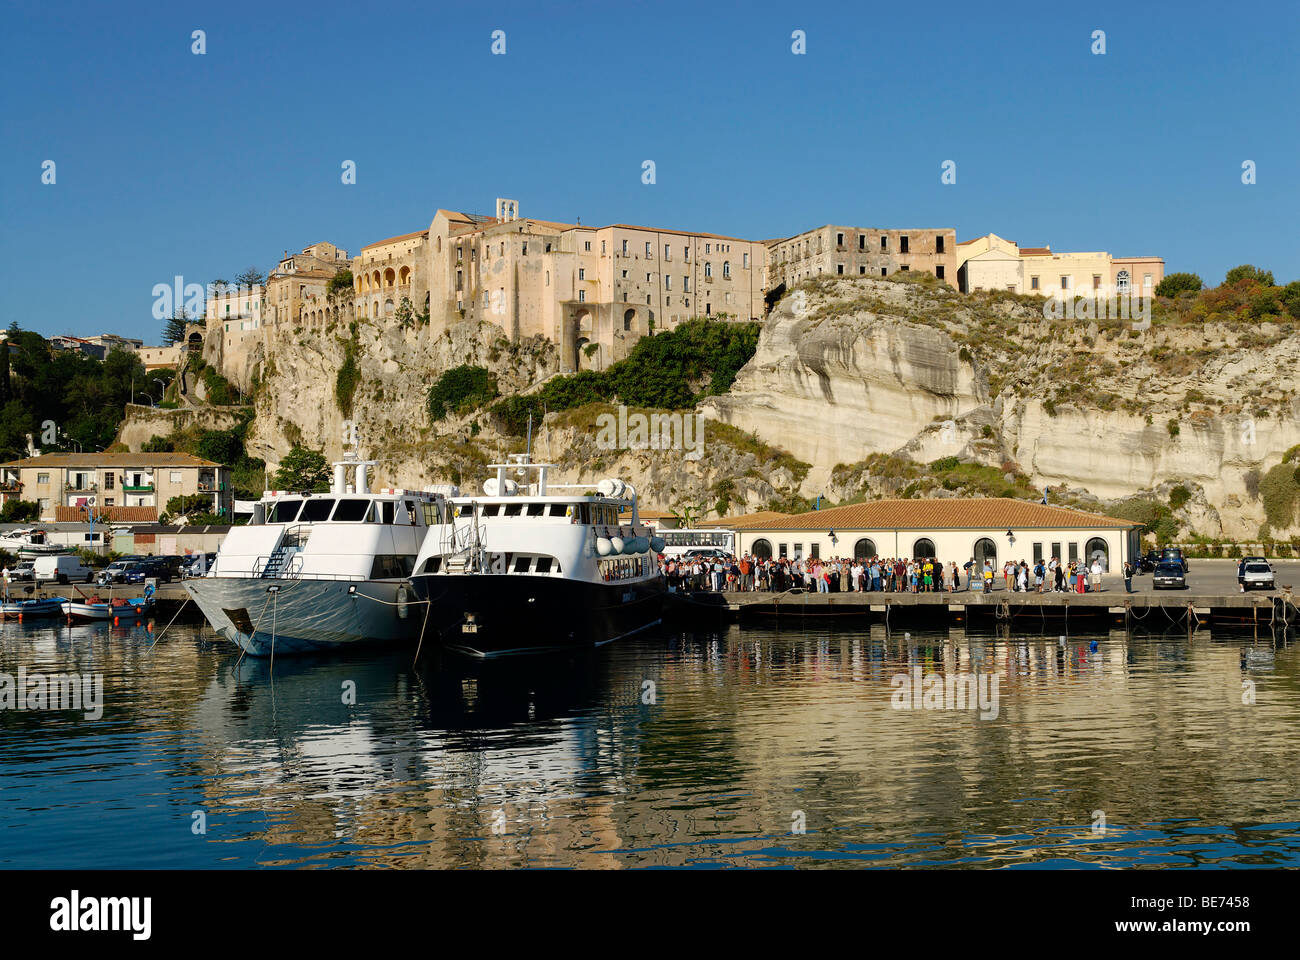 Pizzo at the Tyrrhenian Sea, Calabria, Italy, Europe - Stock Image